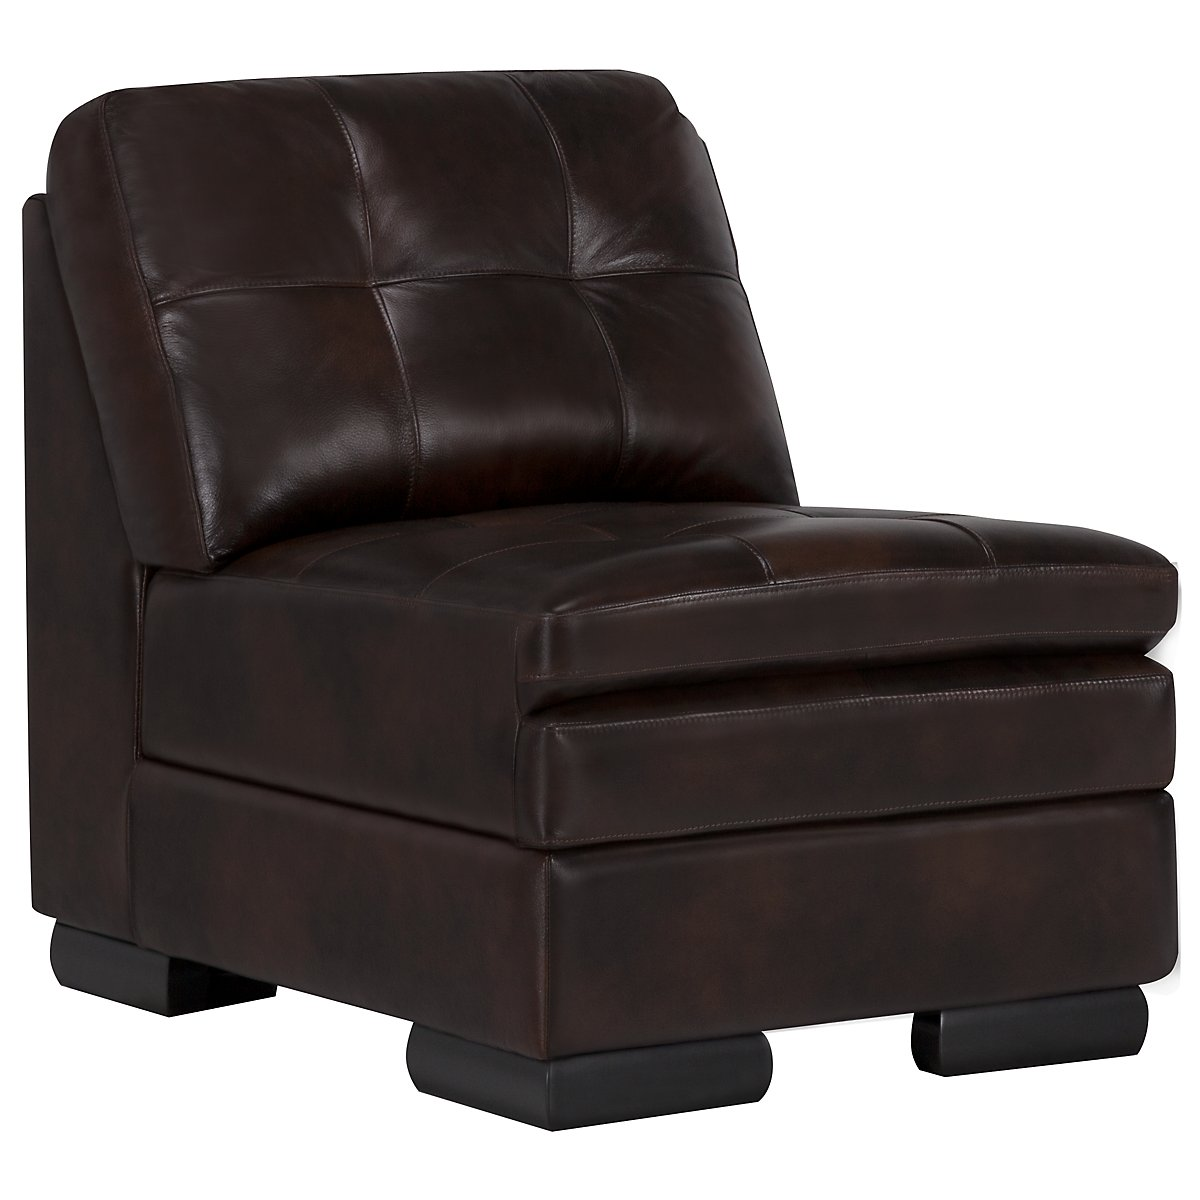 Trevor Dk Brown Leather Accent Chair